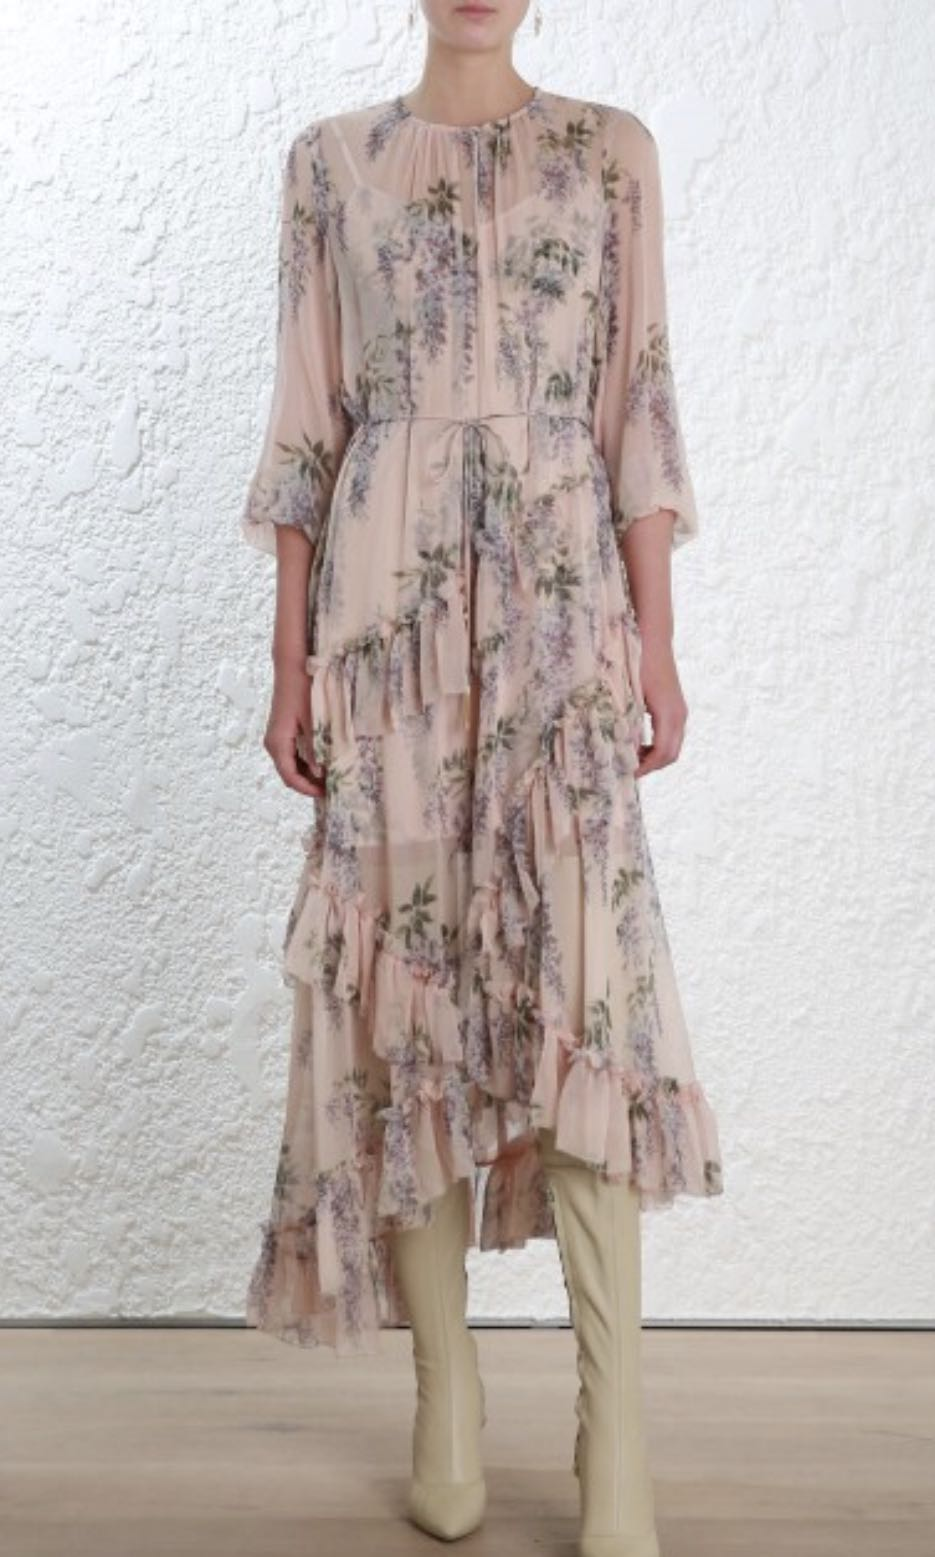 07a123f037b Zimmermann Folly Feathery Dress (SOLD OUT)